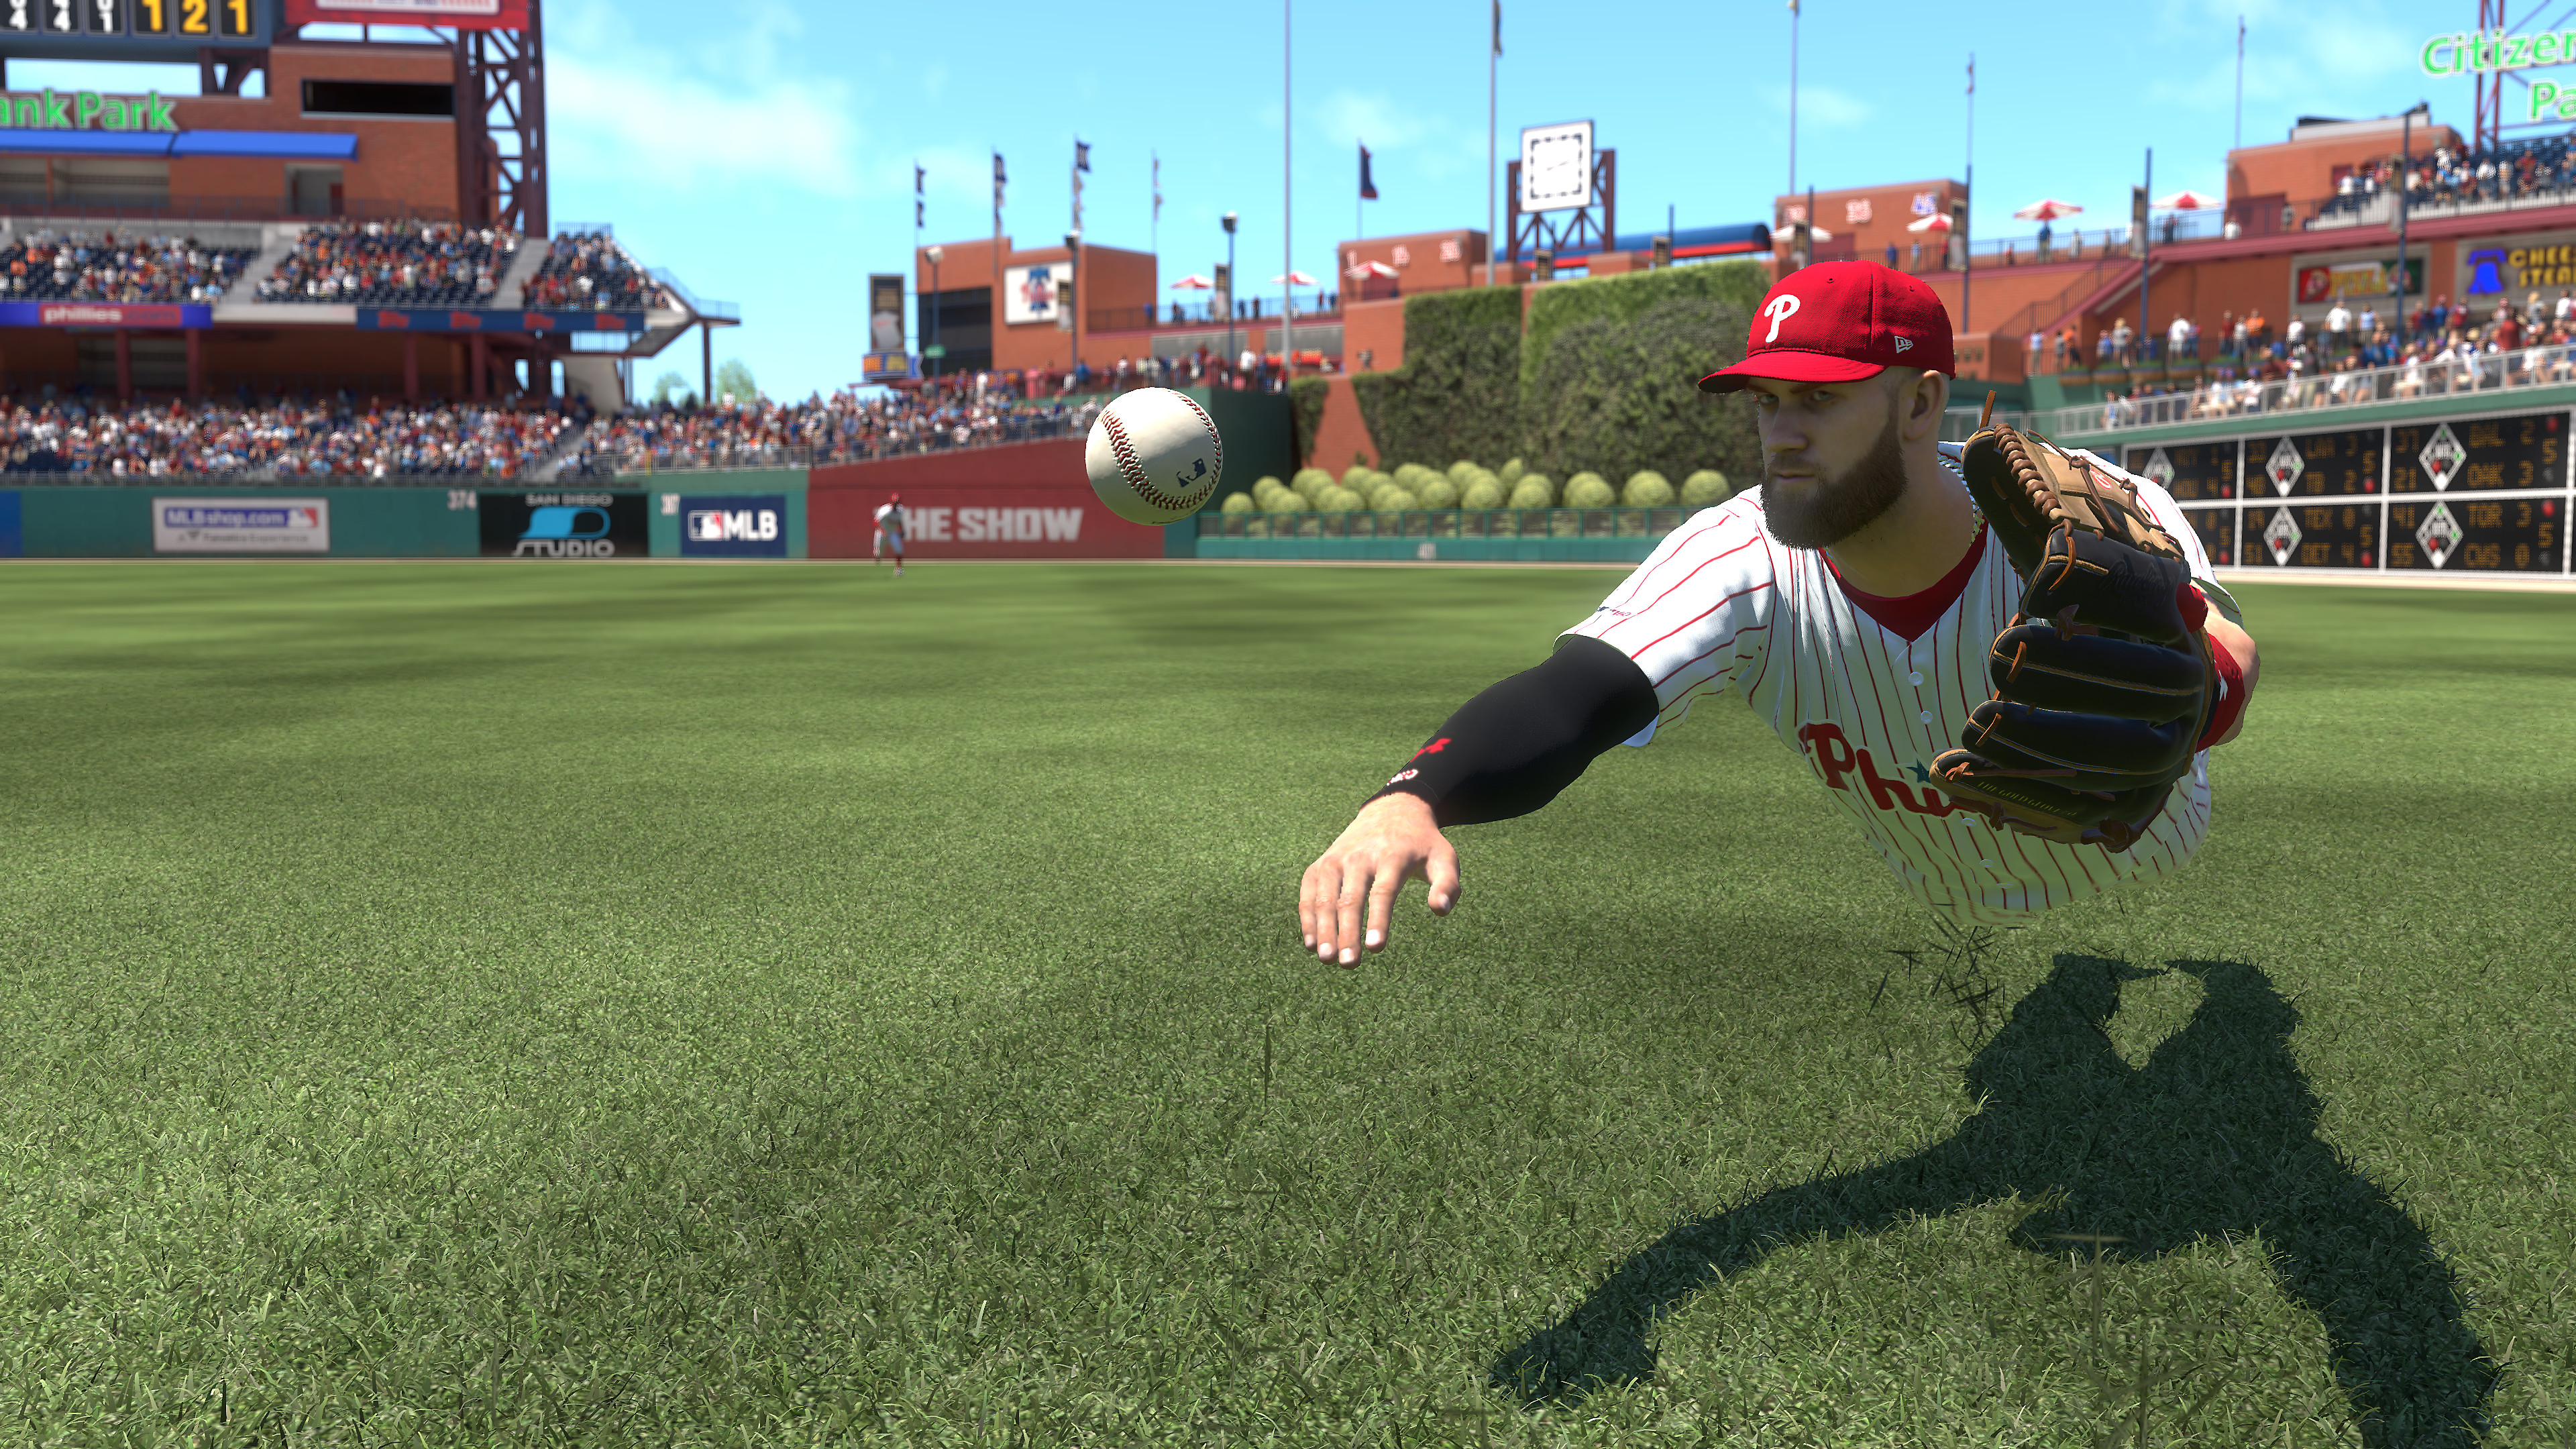 MLB The Show 19 Screenshot - Player diving to catch the ball